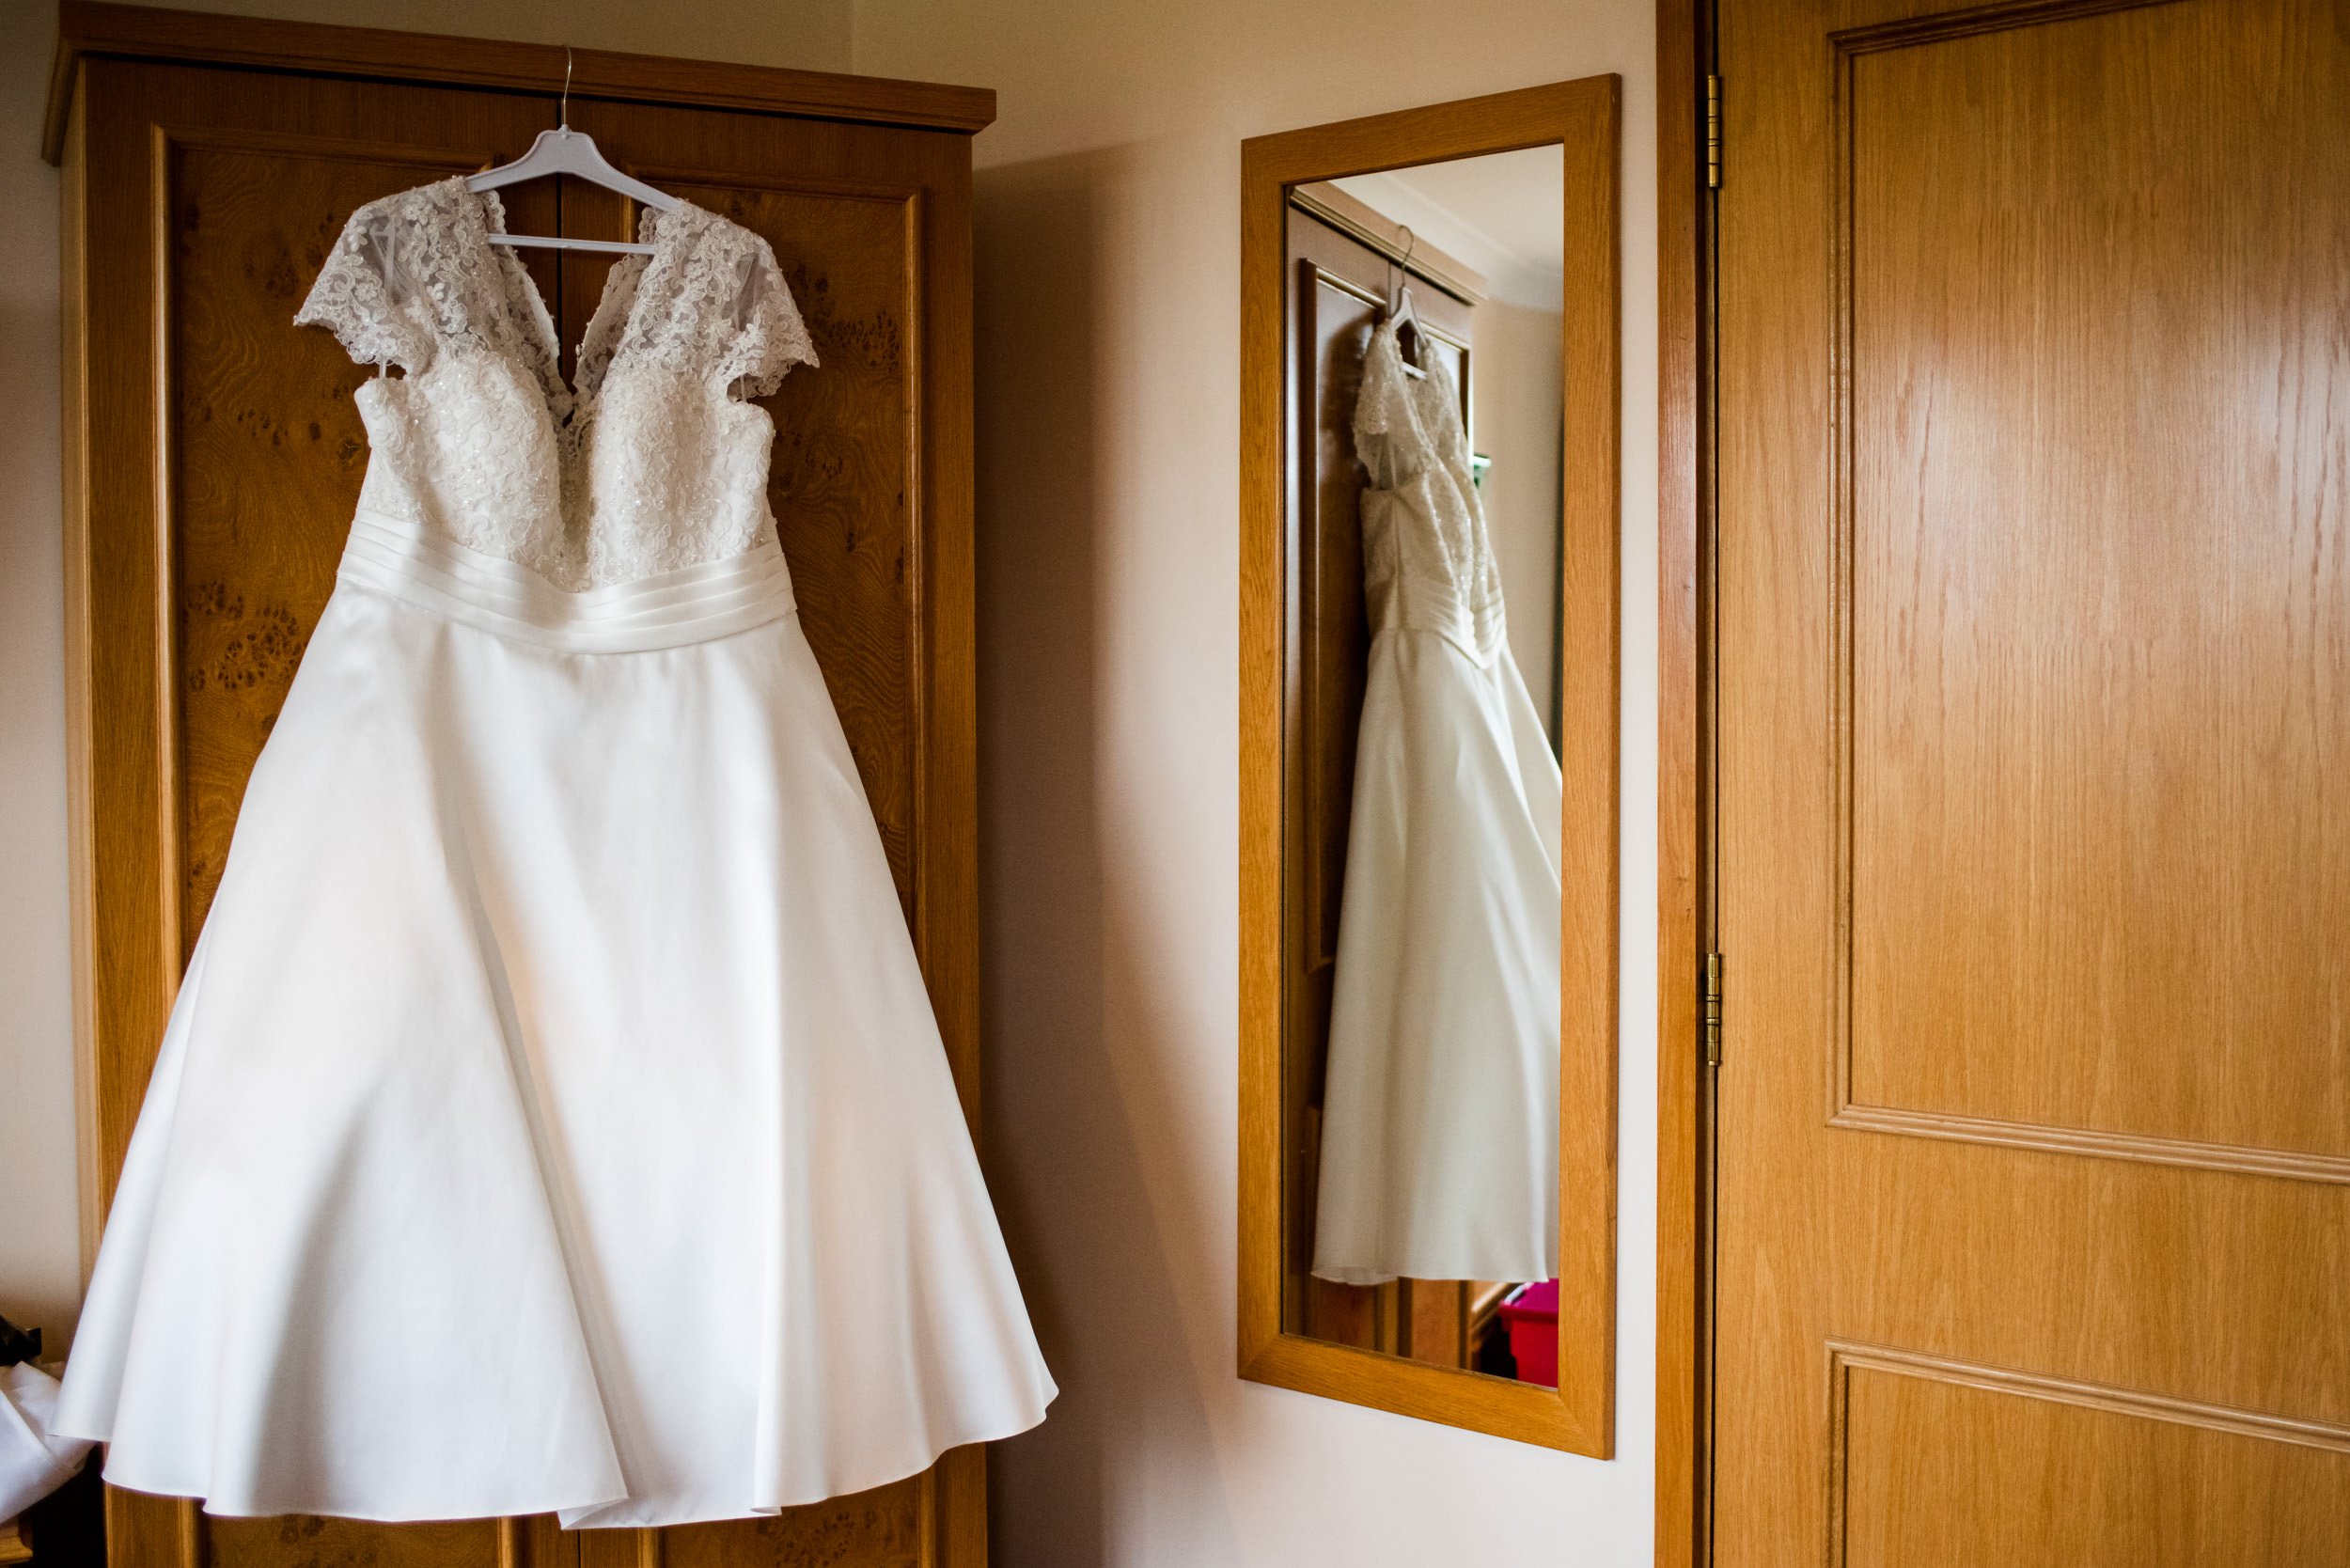 Wedding dress hanging on the wardrobe during Bridal preparations